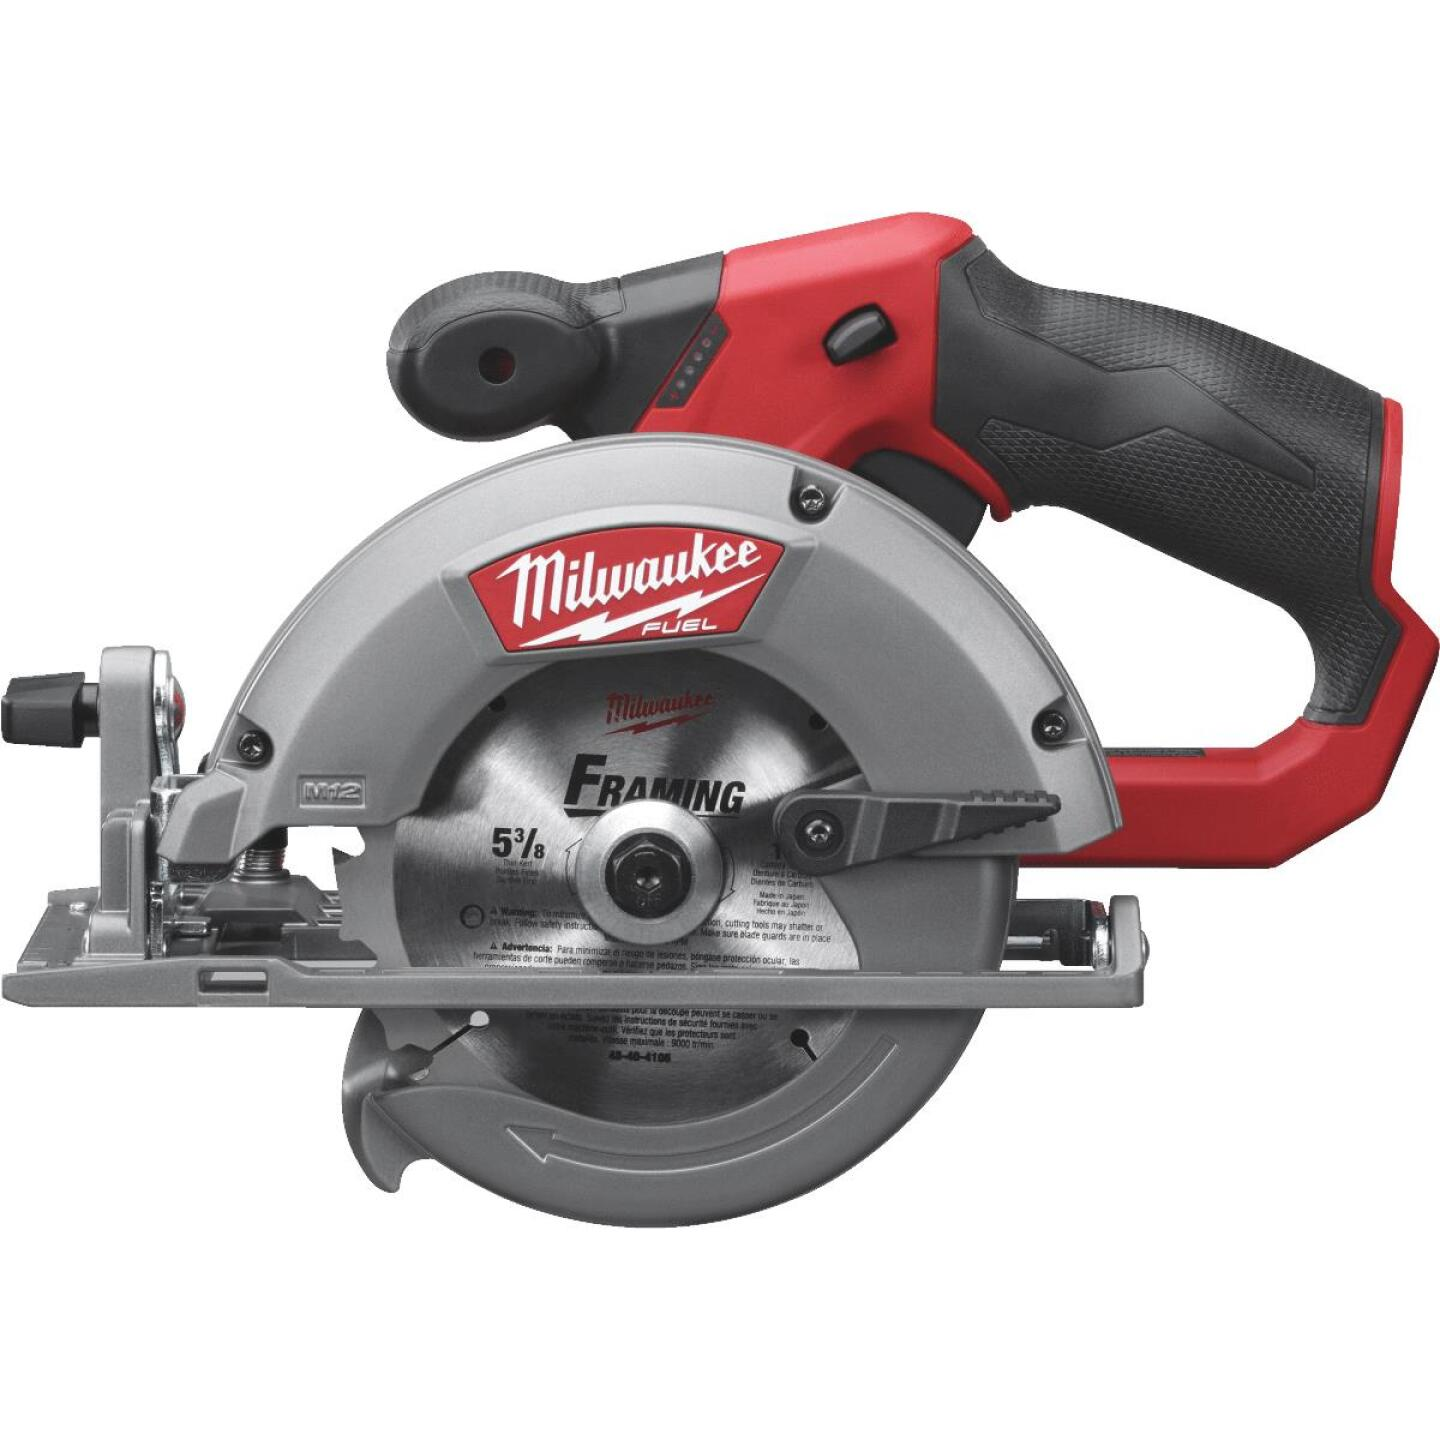 Milwaukee M12 FUEL 12 Volt Lithium-Ion Brushless 5-3/8 In. Cordless Circular Saw (Bare Tool) Image 1